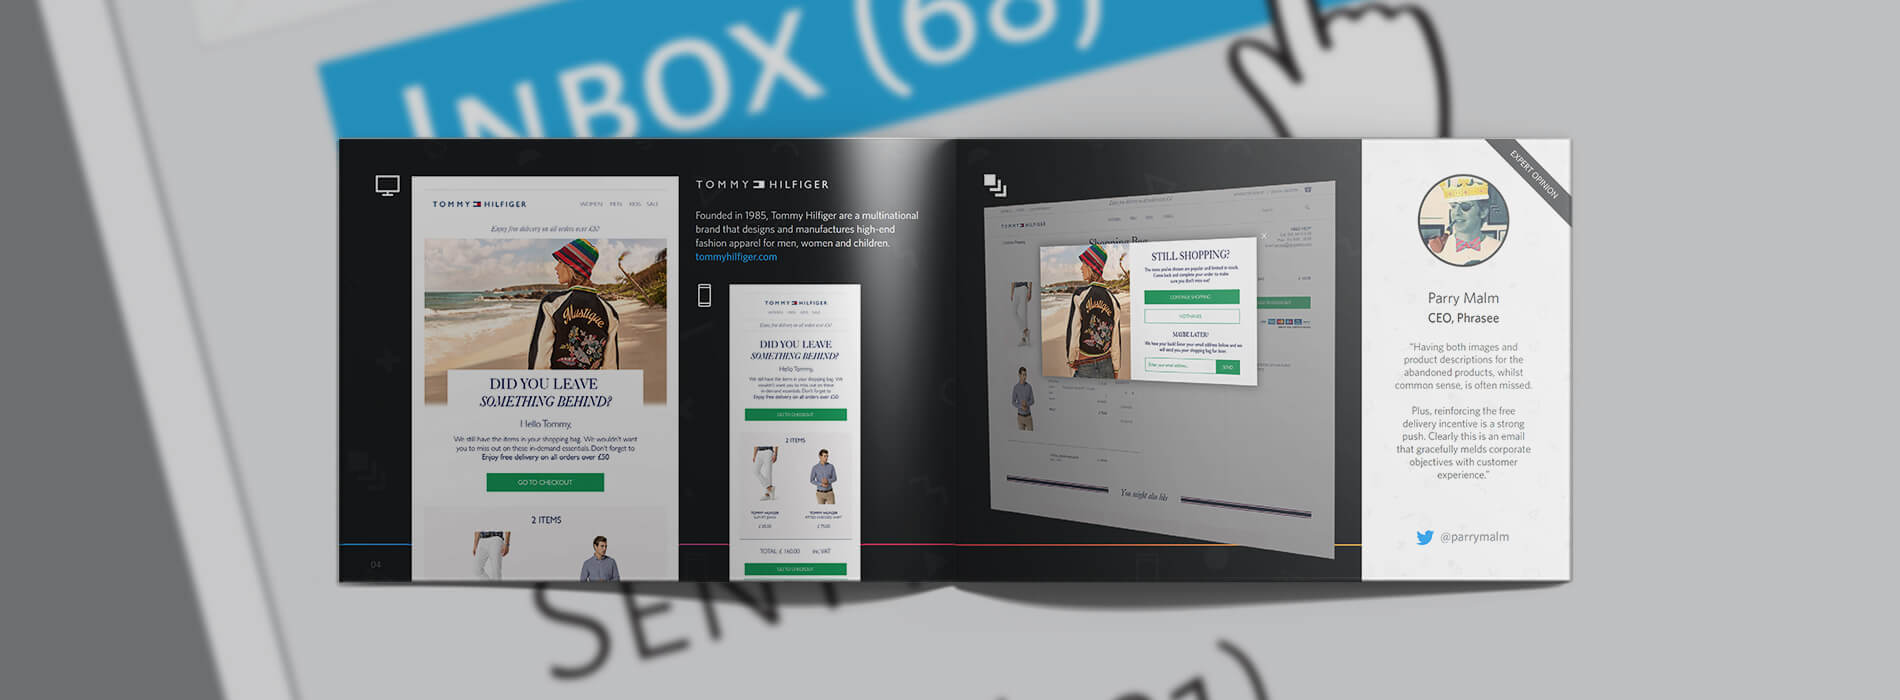 16 Remarkable Remarketing Campaigns